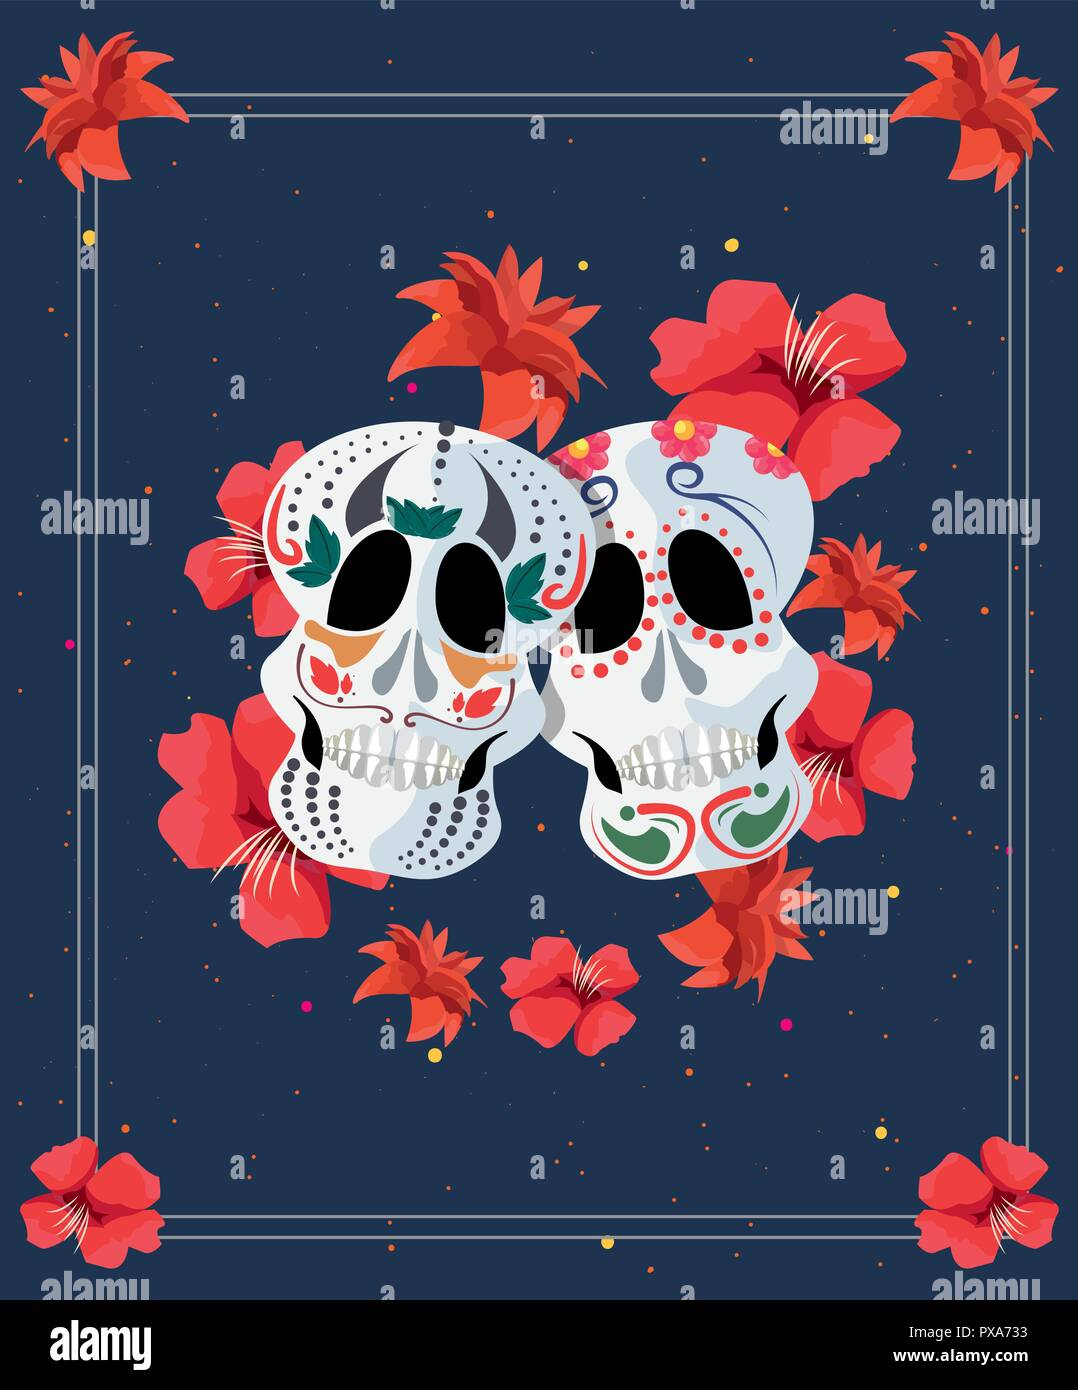 Day Of The Dead Skulls Red Flowers Frame Vector Illustration Stock